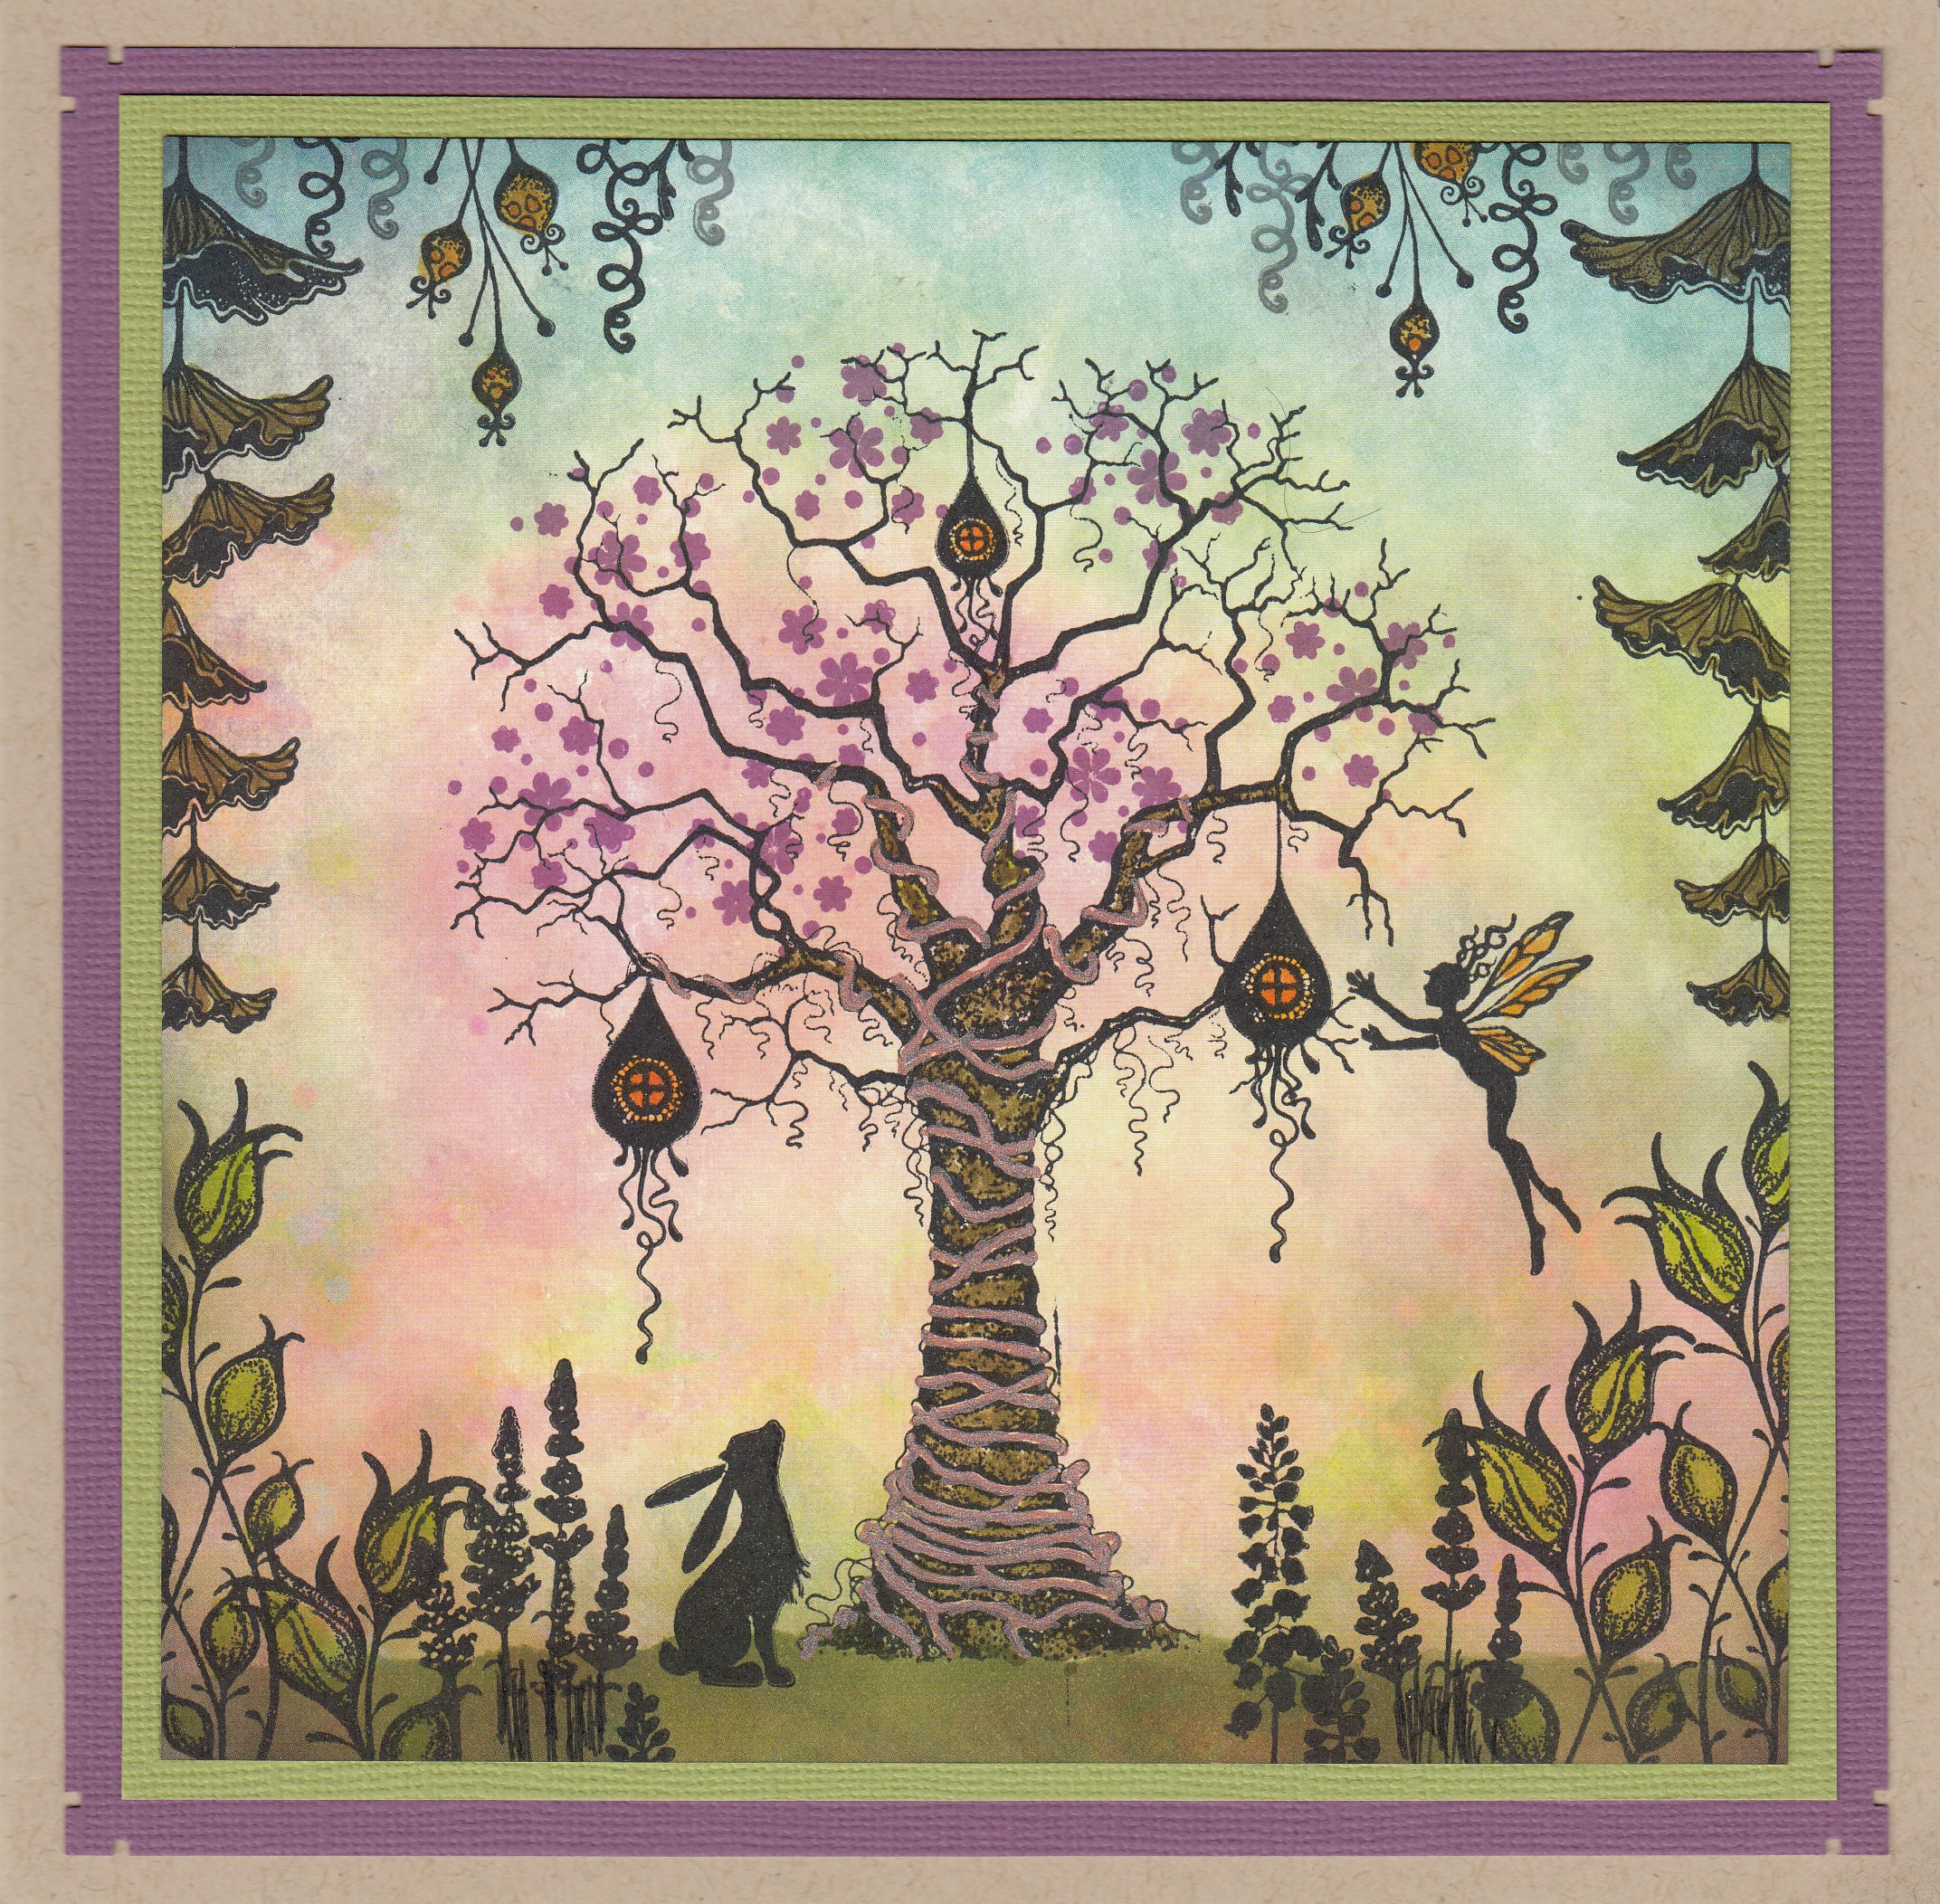 Tree with Hare by Lana Murray